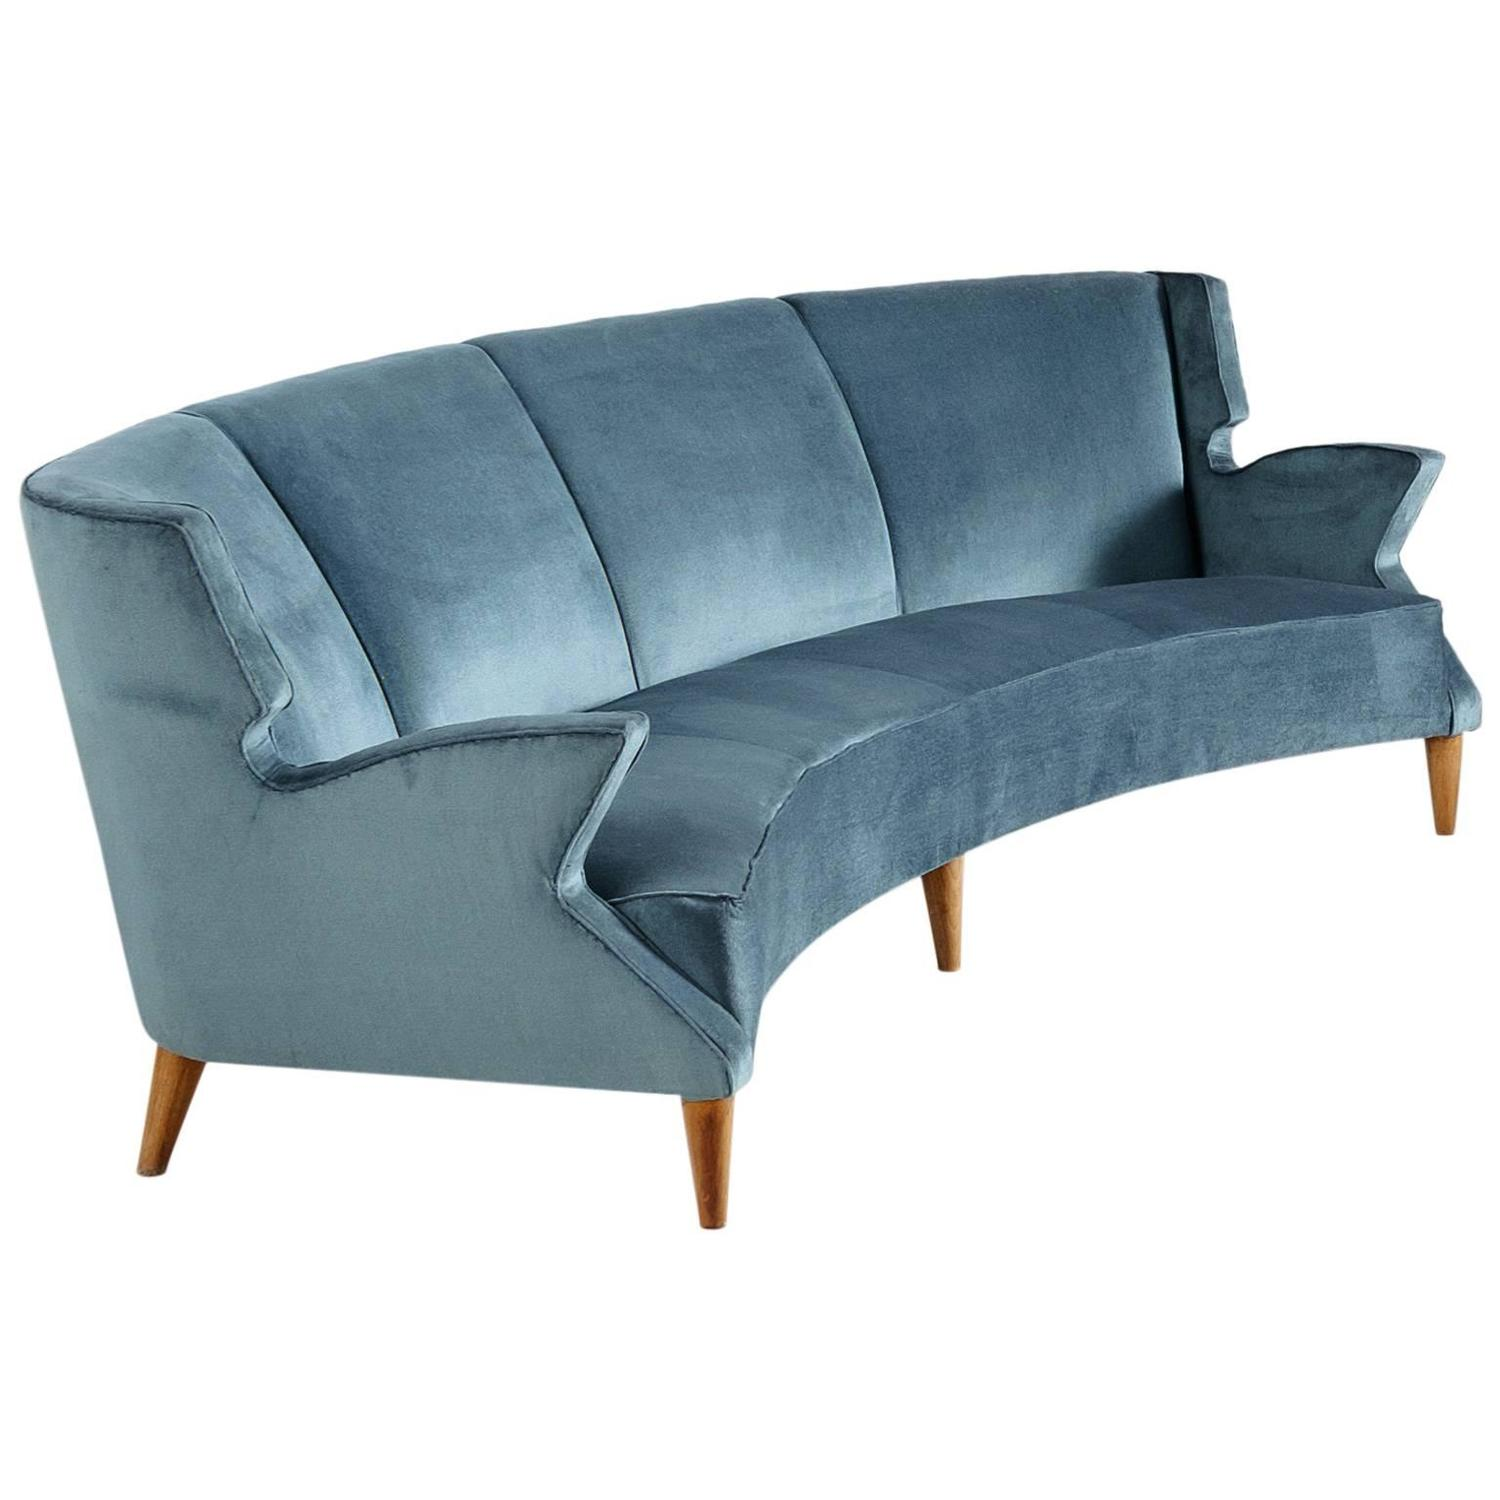 Italian Four Seat Curved Sofa For Sale at 1stdibs